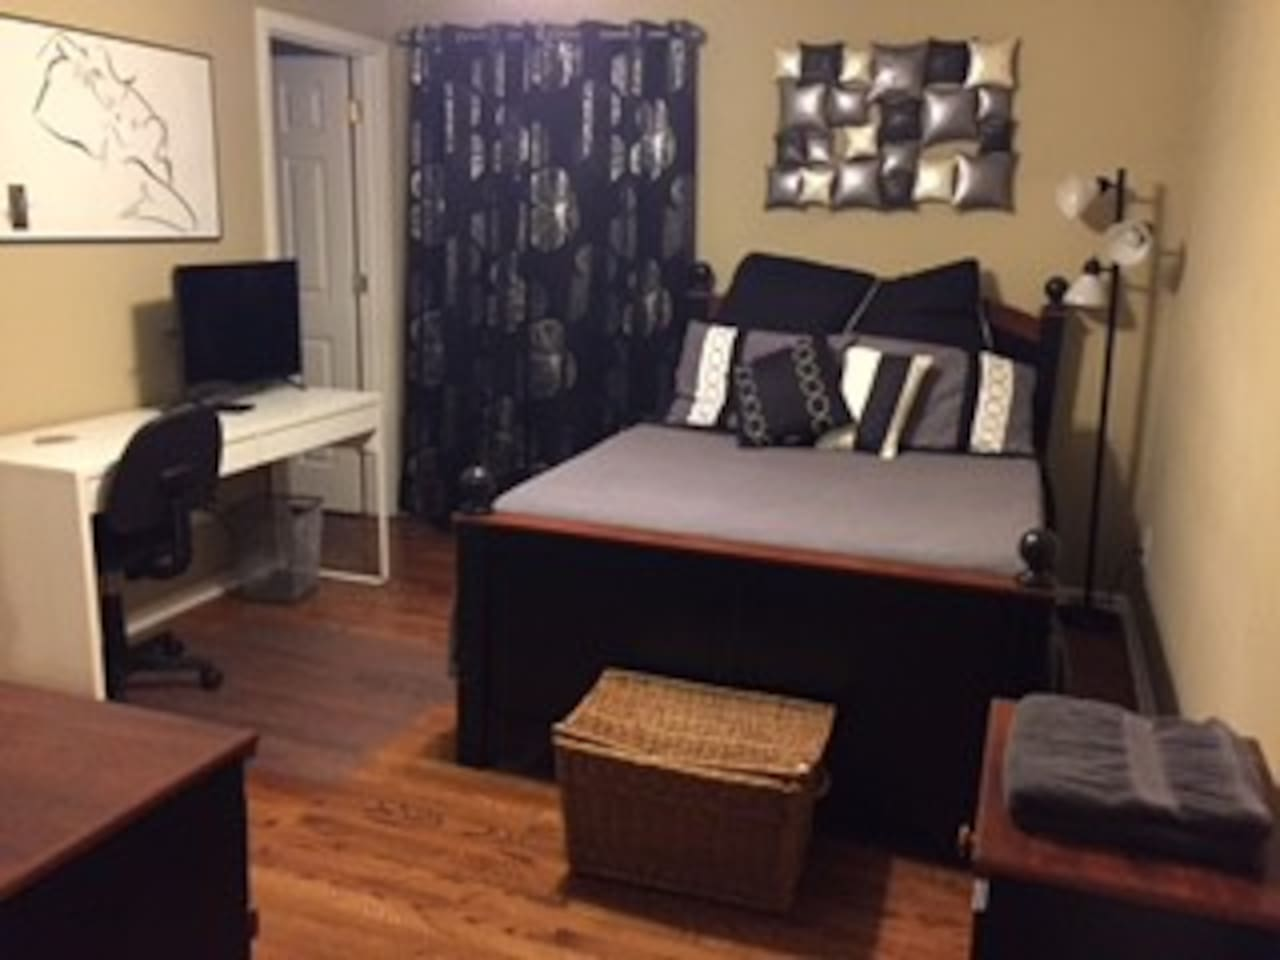 Bedroom - full bed with new mattress Sept '16. Desk, Chair, and TV. The door pictured is to the Walk-in closet.